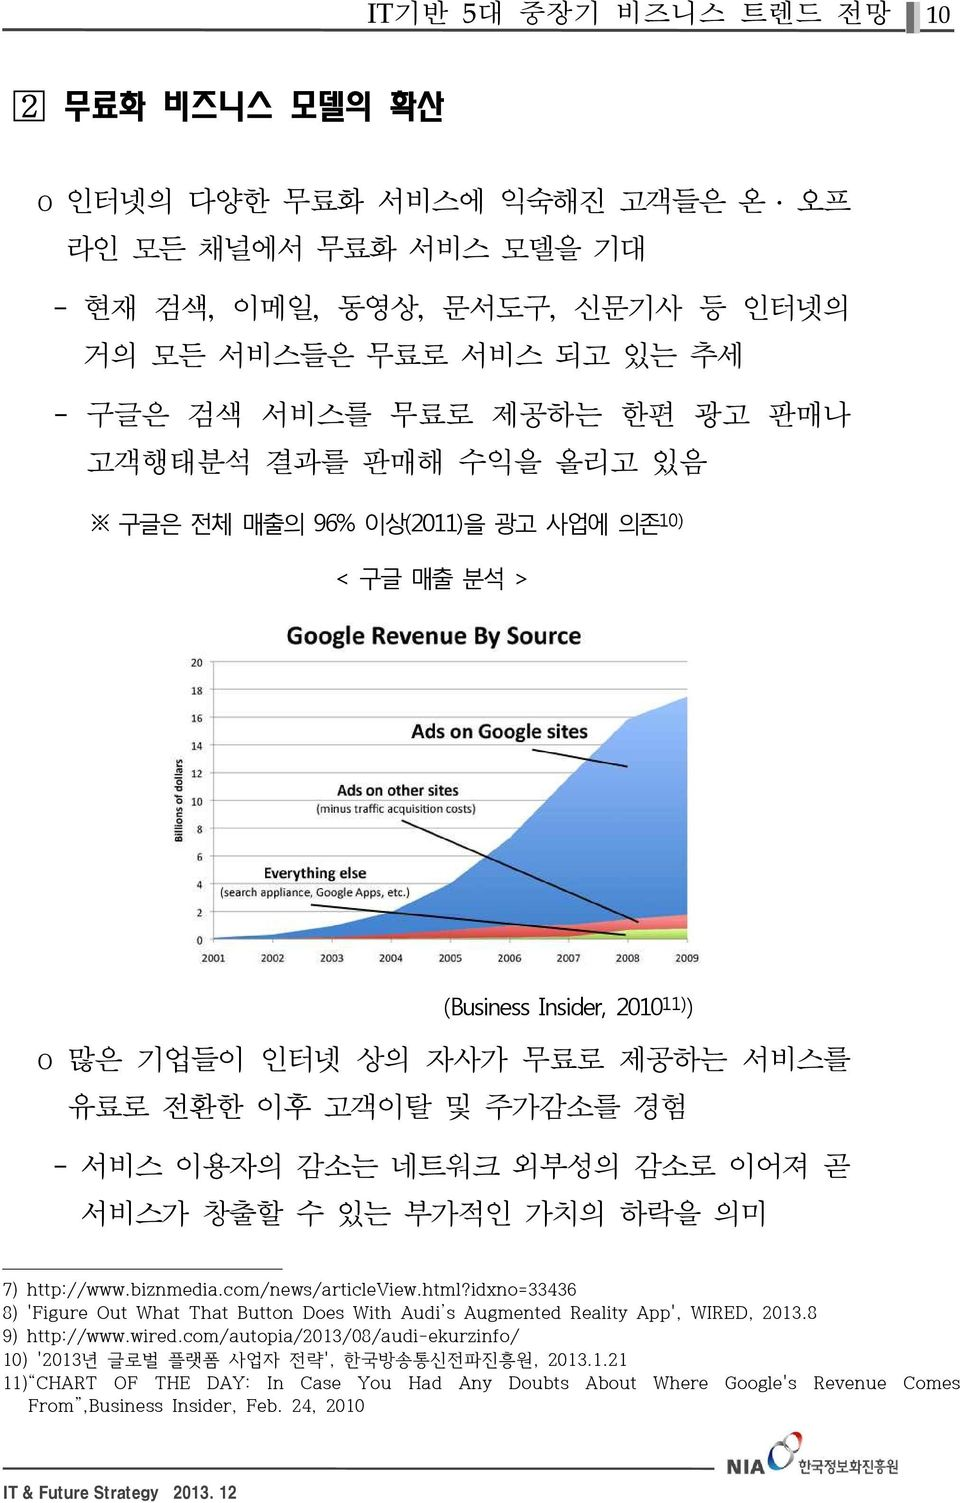 감소로 이어져 곧 서비스가 창출할 수 있는 부가적인 가치의 하락을 의미 7) http://www.biznmedia.com/news/articleview.html?idxno=33436 8) 'Figure Out What That Button Does With Audi s Augmented Reality App', WIRED, 2013.